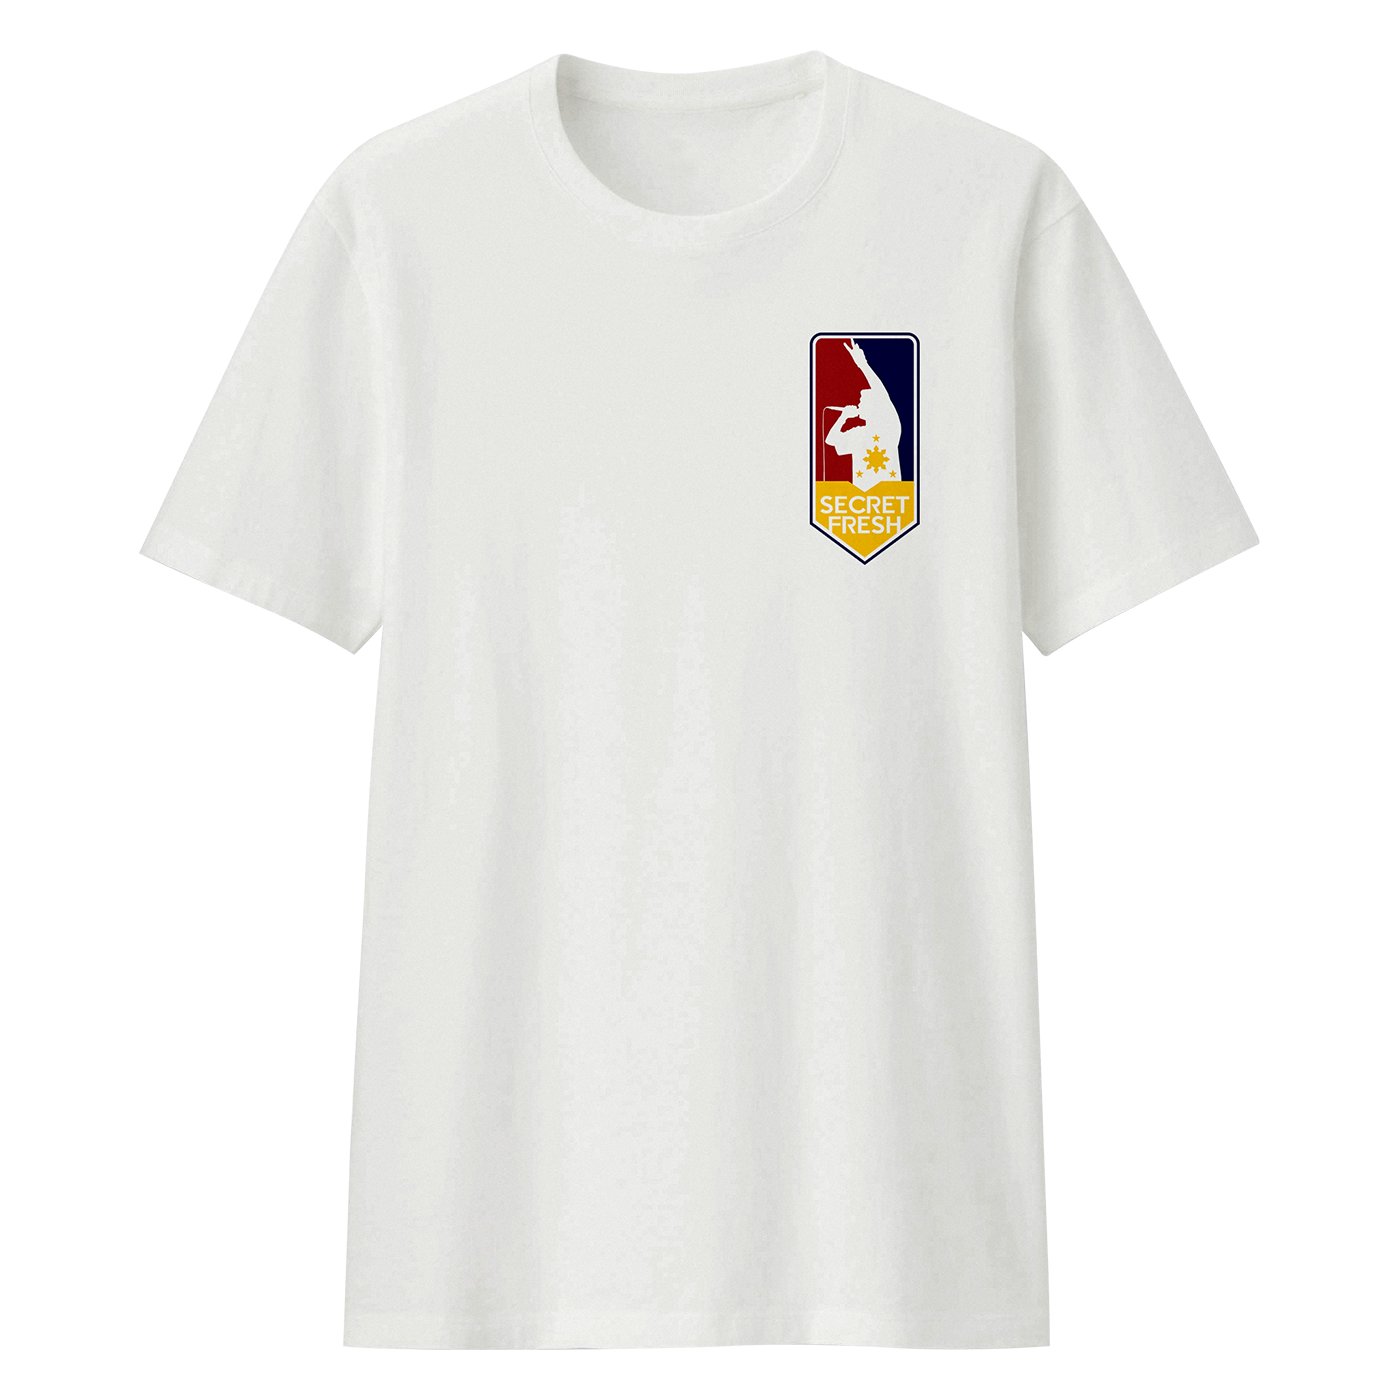 Men's FrancisM Tee_01 (White)